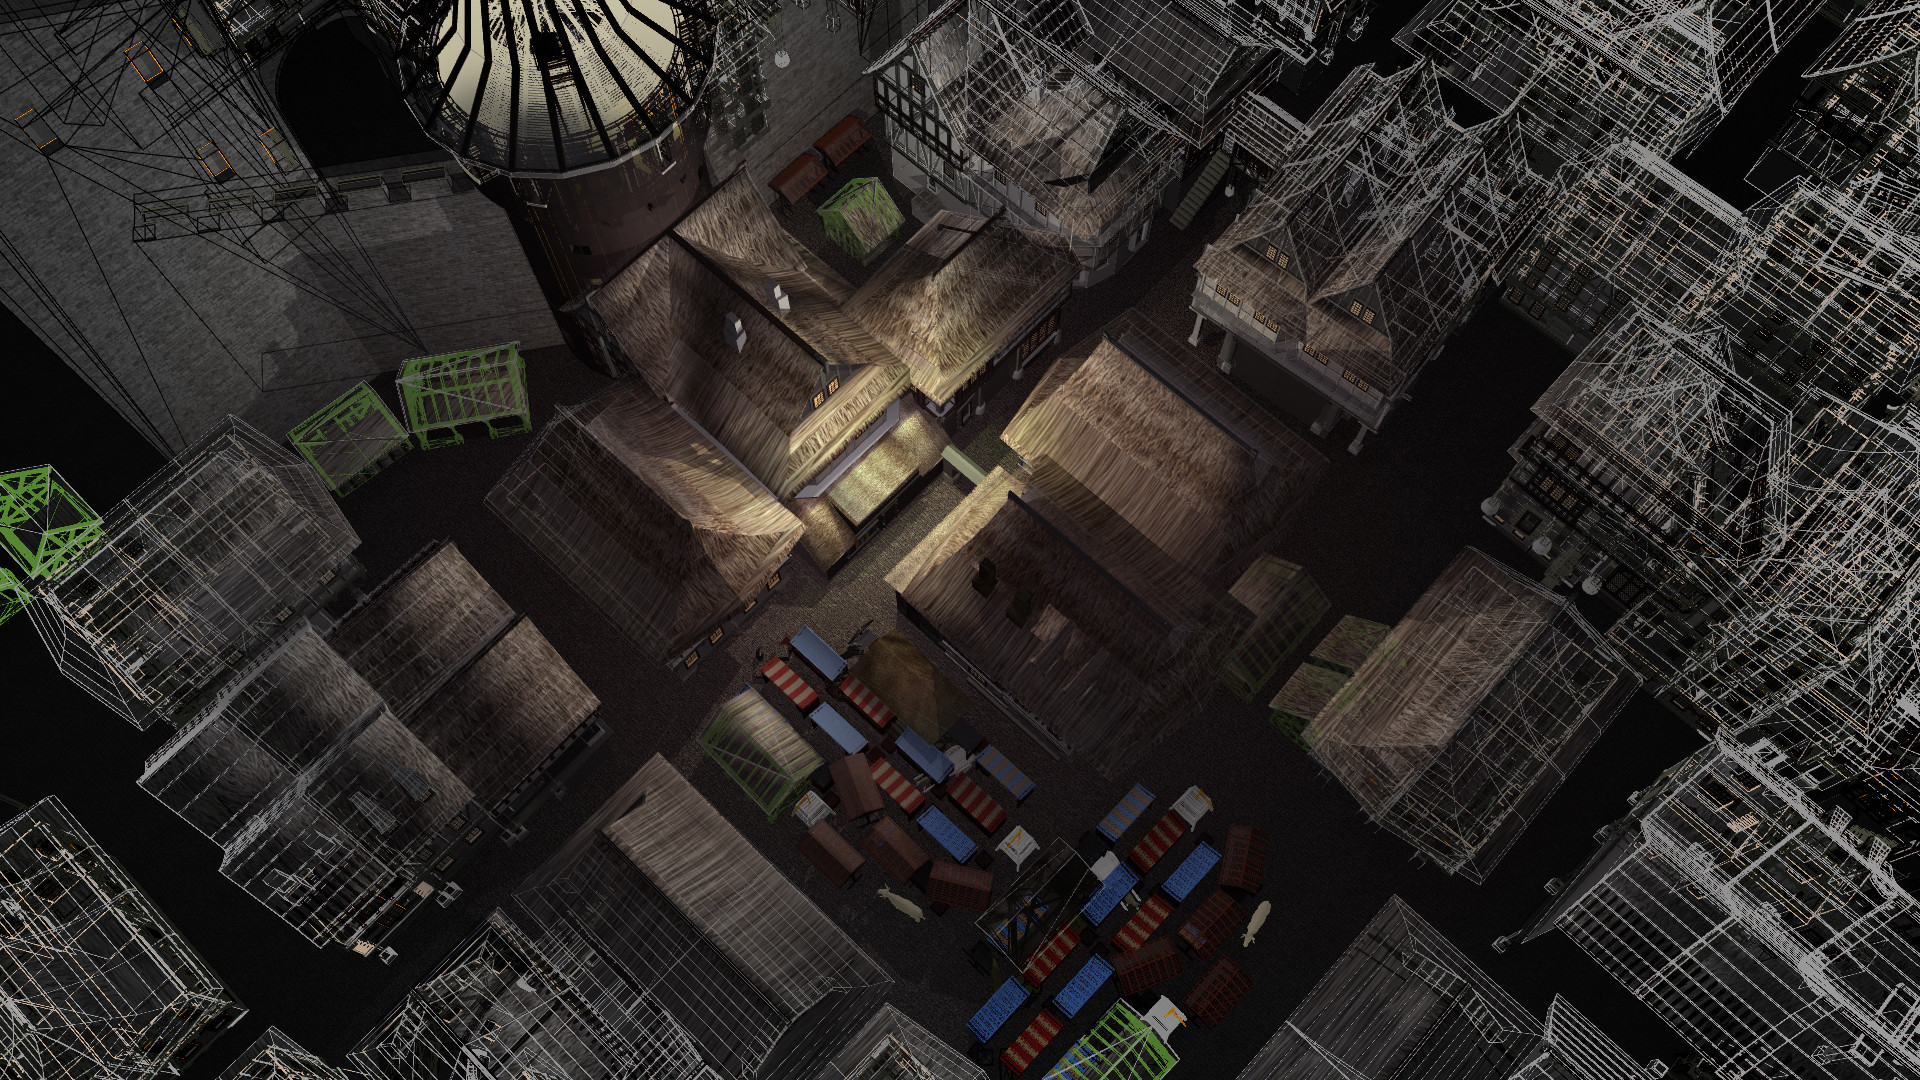 3D Geo for the Tavern Effect  - Once Upon  a Time Season 1